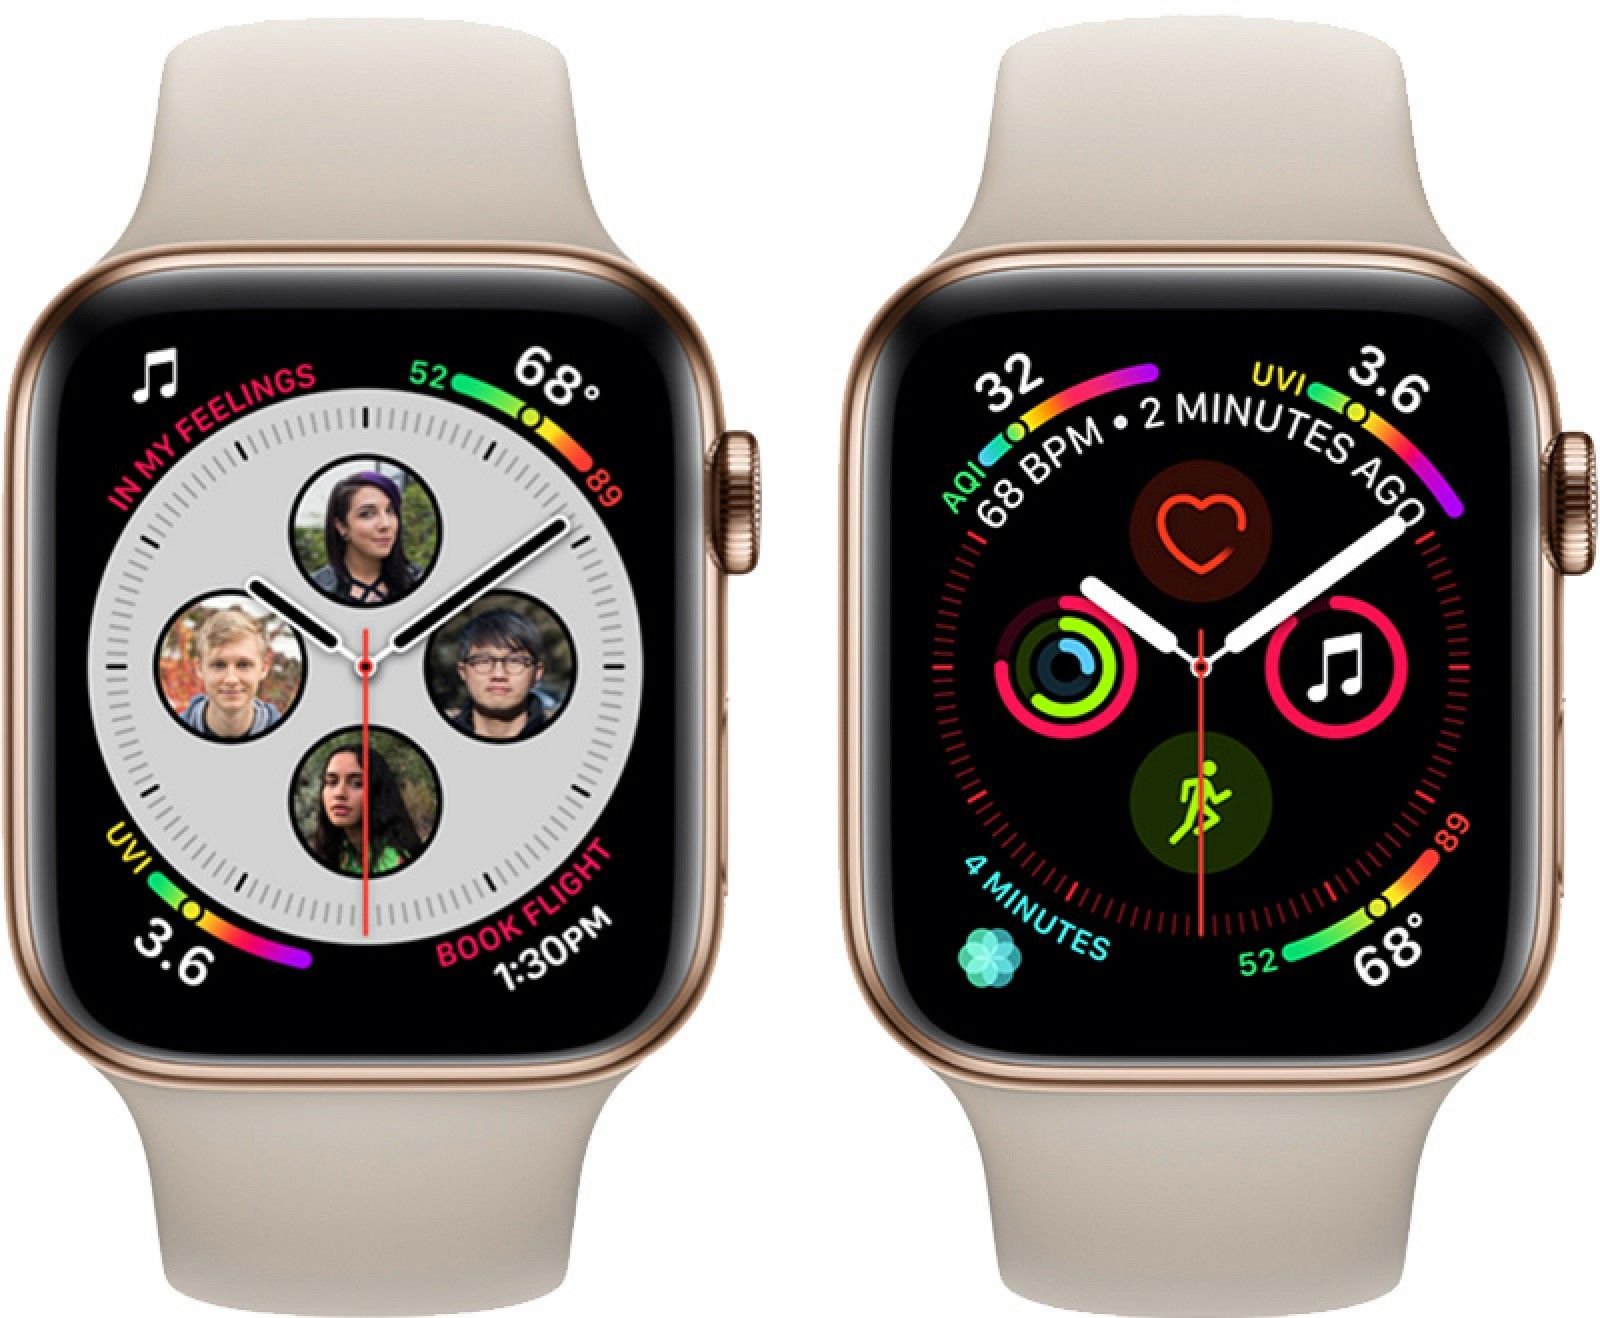 Useful Tips, Tricks, and Walkthroughs for New Apple Watch